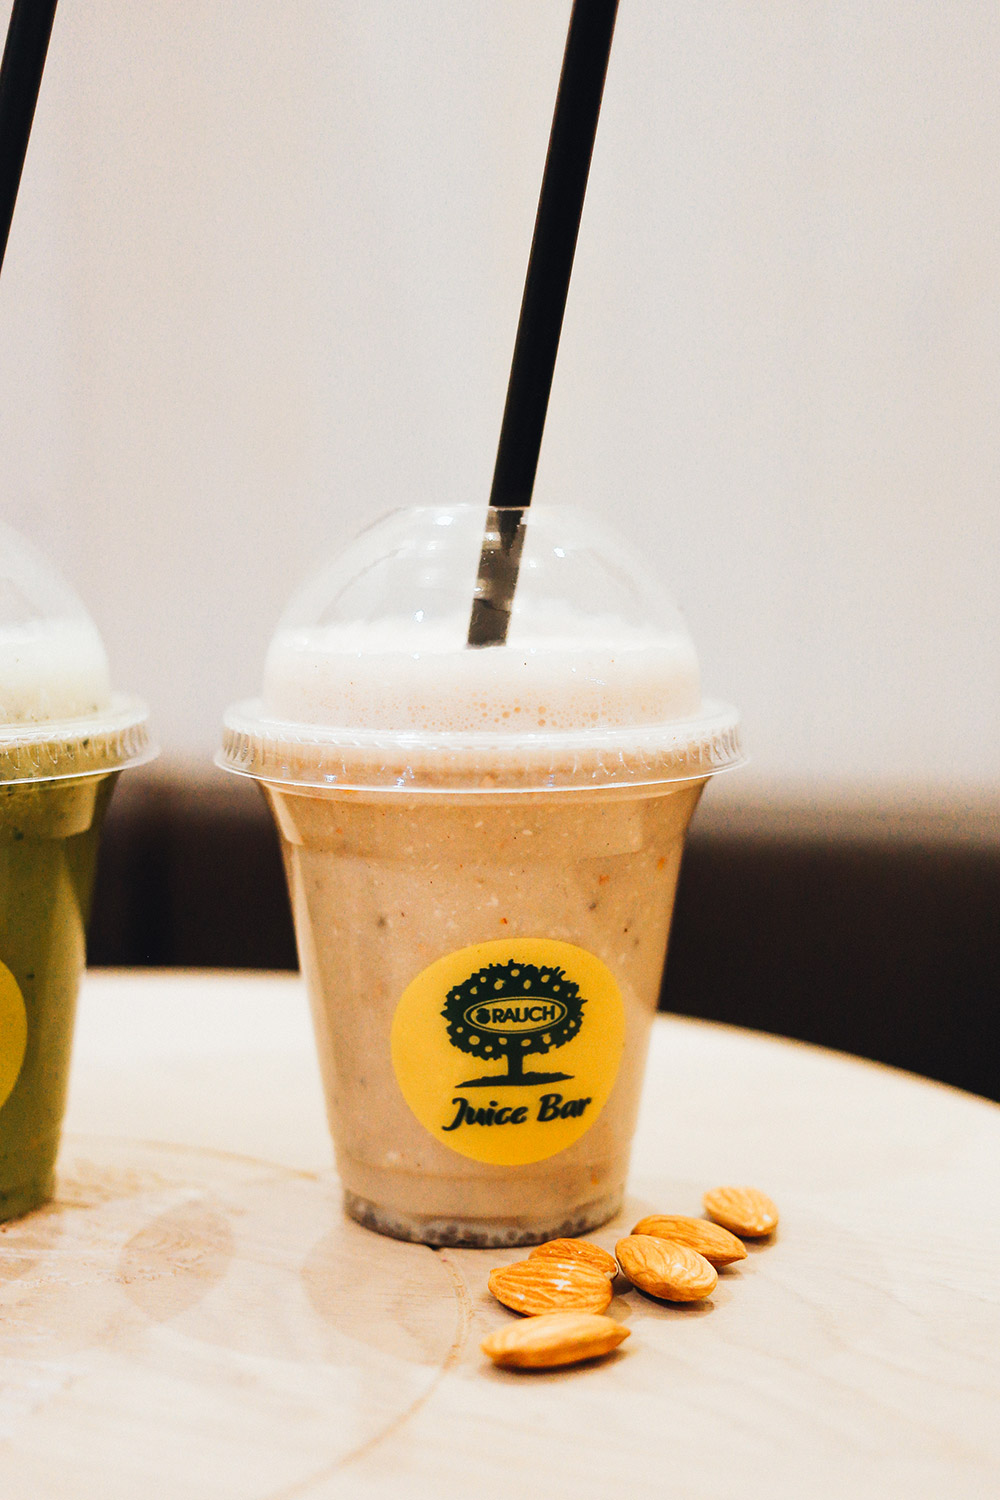 Rauch Juice Bar Innsbruck Special mit Who is Mocca?, Milky Mocci Juice, Foodblog, whoismocca.com